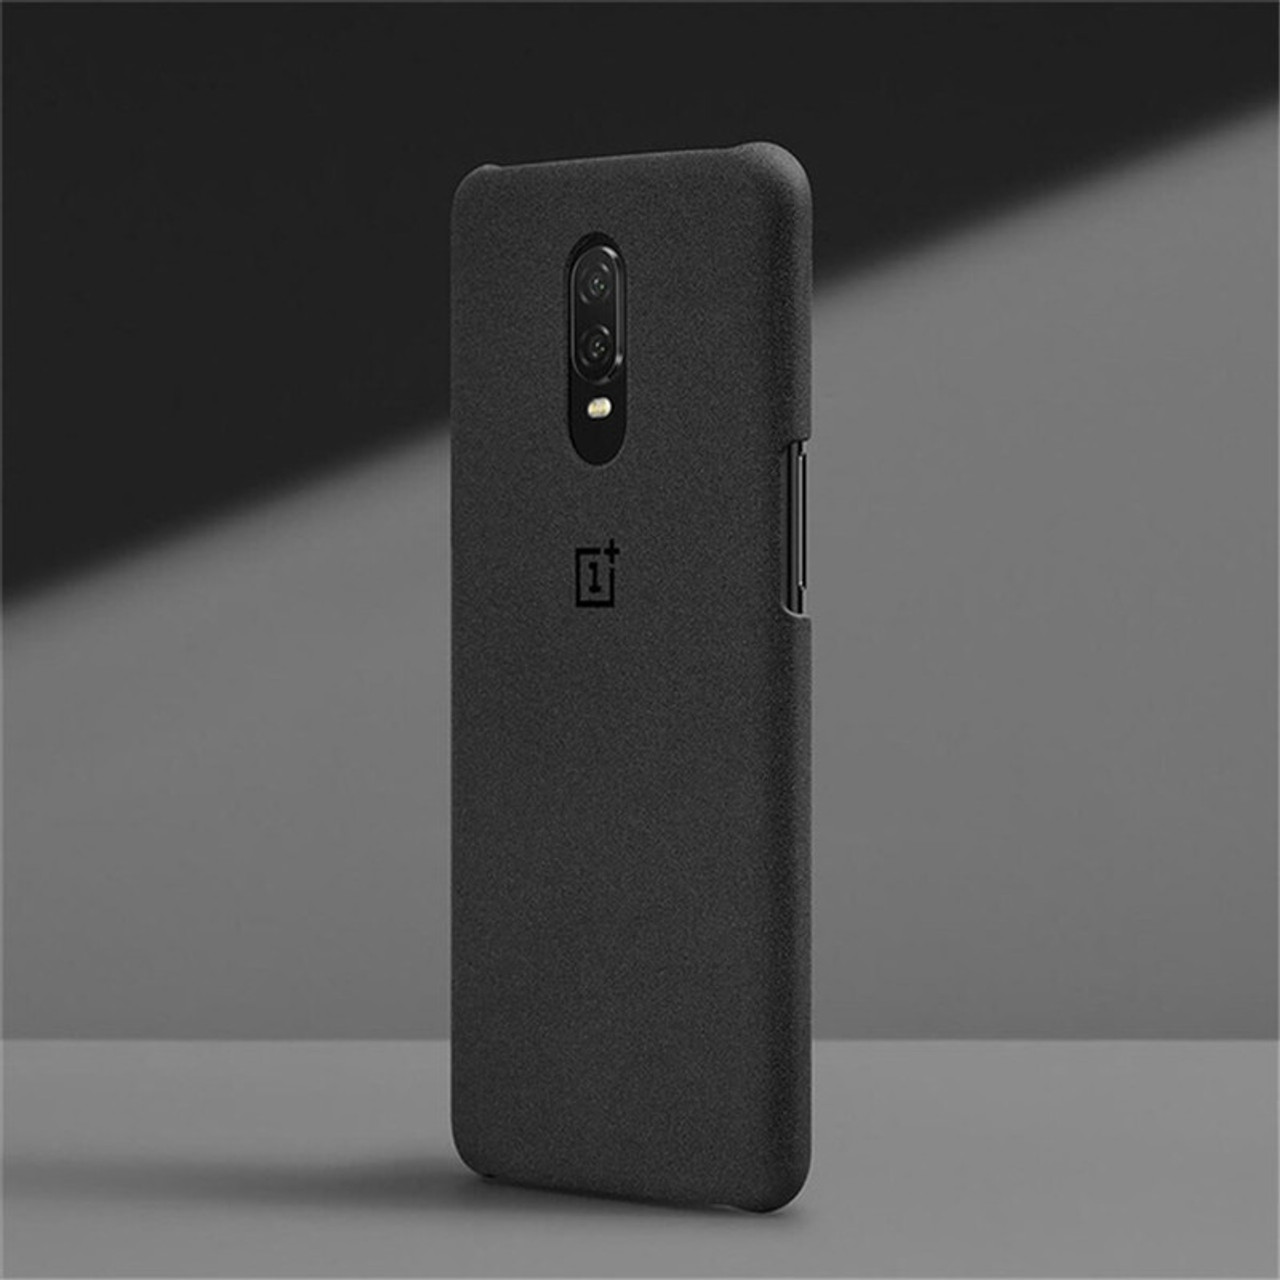 new product 1773d 5f1da oneplus 6T case original 100% Oneplus official protective cover silicone  Nylon Karbon bumper Leather Flip cover one plus 6